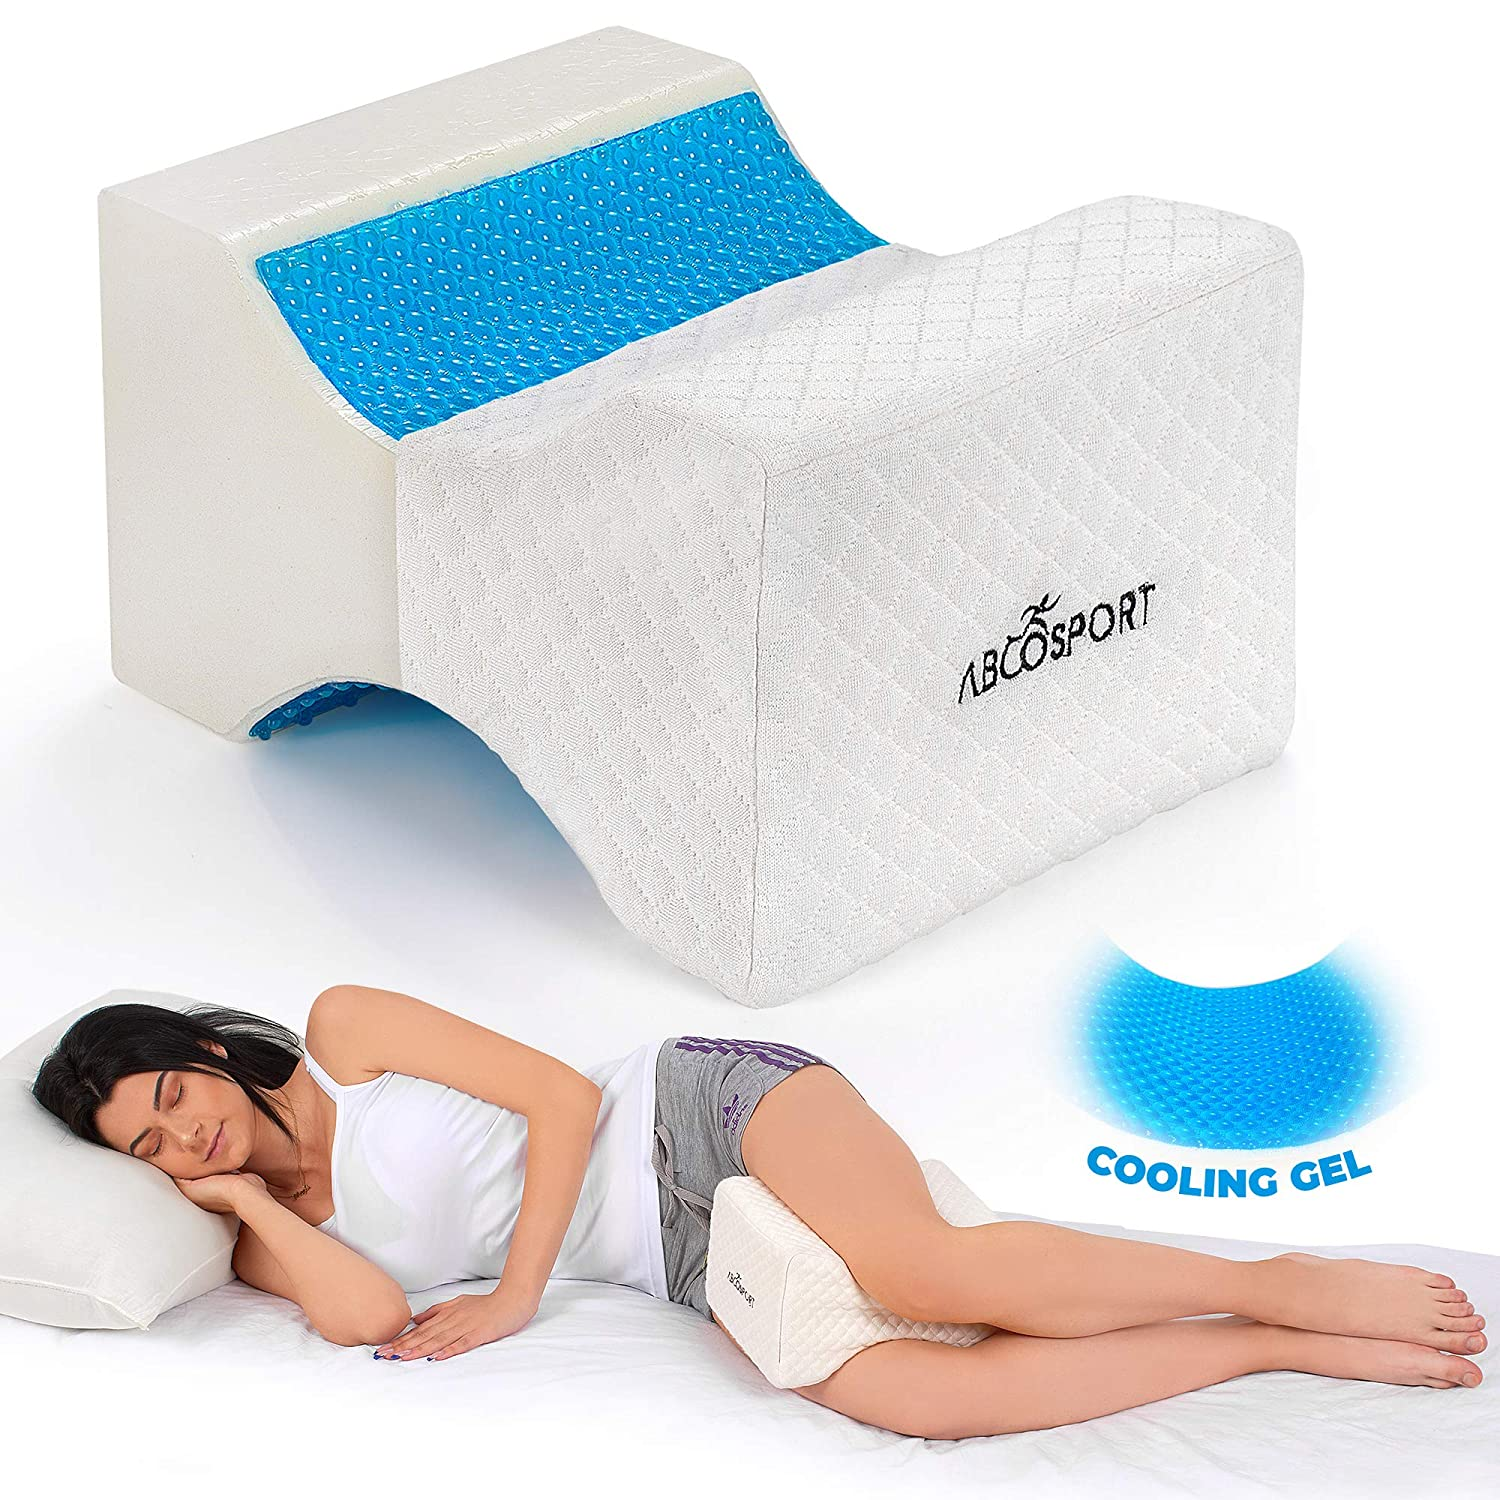 Memory Foam Knee Pillow with Cooling Gel – Leg Pillow Wedge for Side Sleepers, Pregnancy, Spine Alignment and Pain Relief – Breathable, Hypoallergenic and Comfortable – with Washable Cover